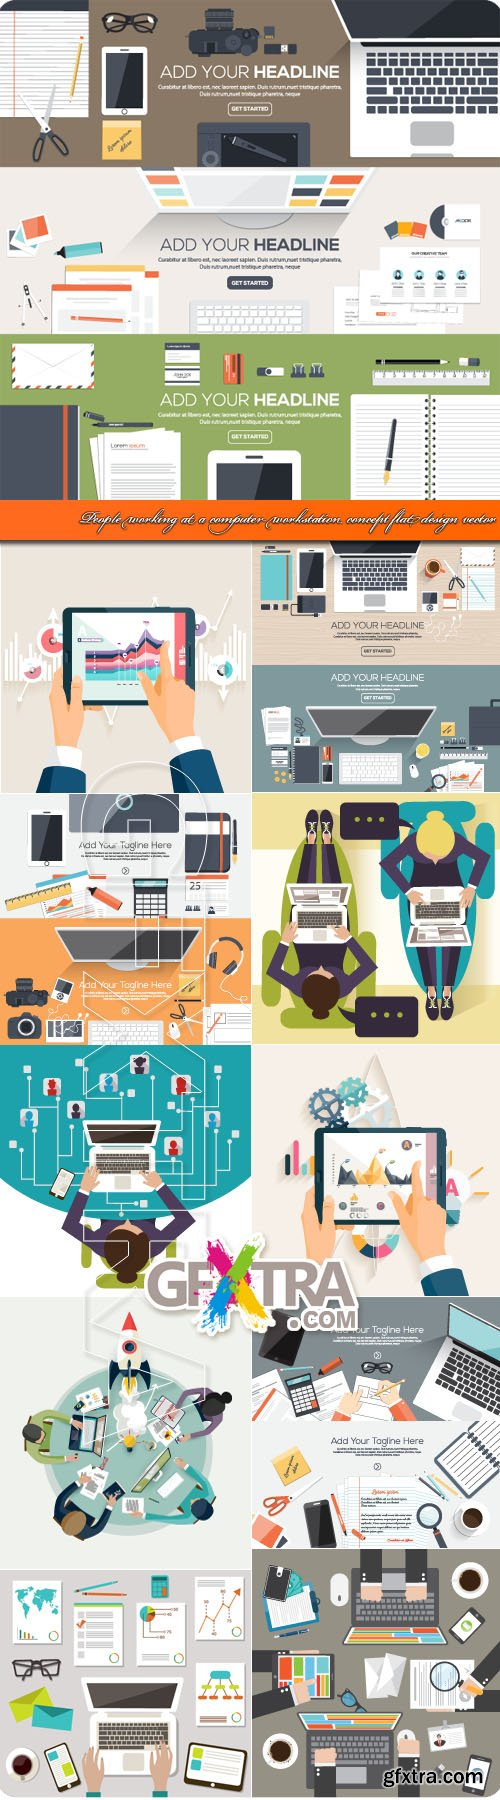 People working at computer workstation concept flat design vector